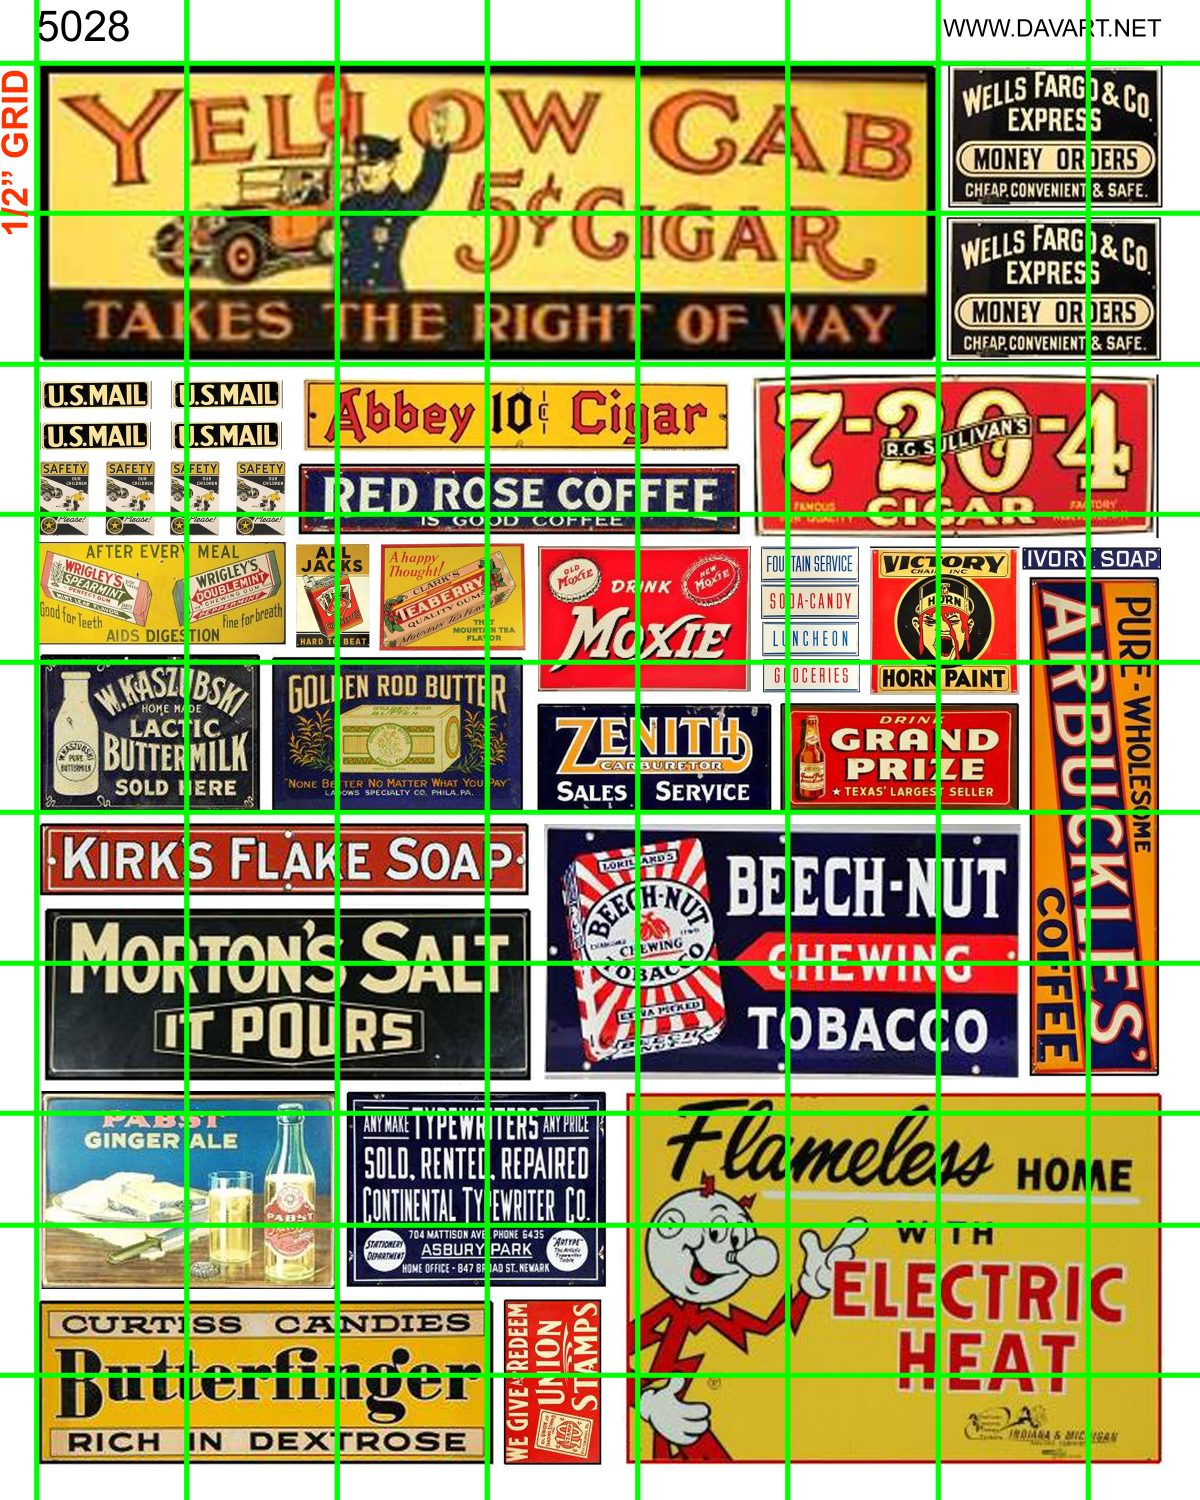 5028 BUSINESS/PRODUCTS - YELLOW CAB CIGARS, BEECH NUT, REDDY ELECTRIC,  BUTTERFINGERS, MORTON'S SALT MORE